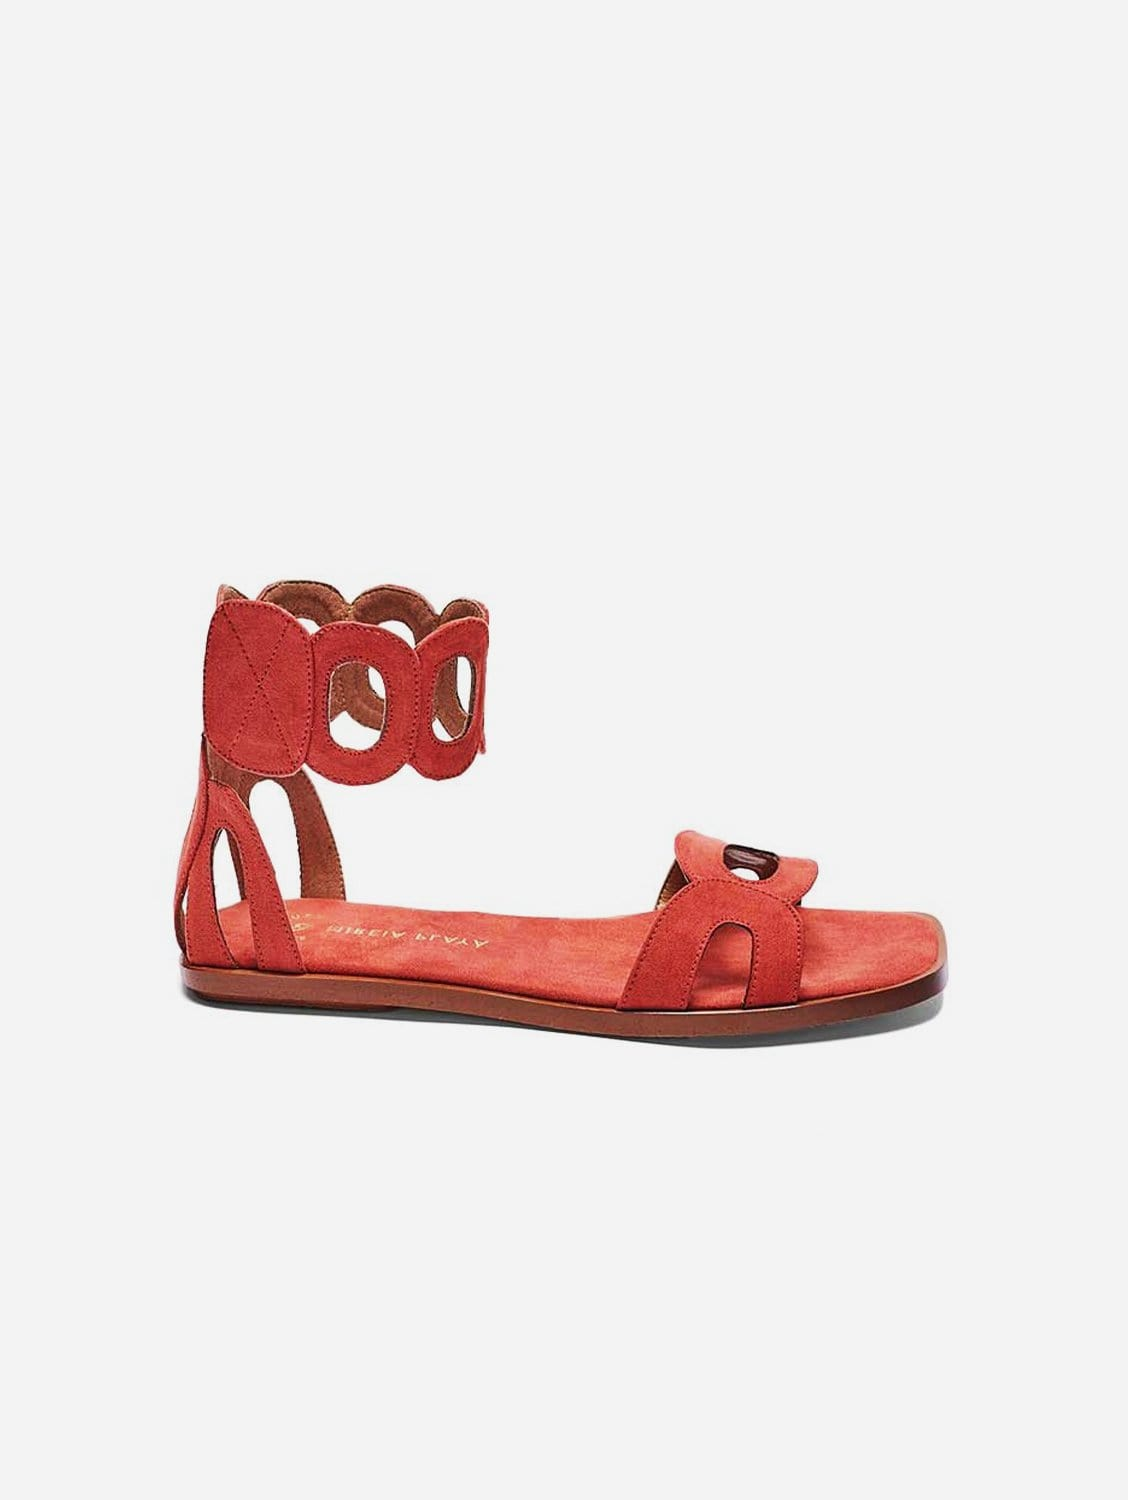 Hortensia Recycled Polyester Vegan Suede Ankle Sandal | Watermelon